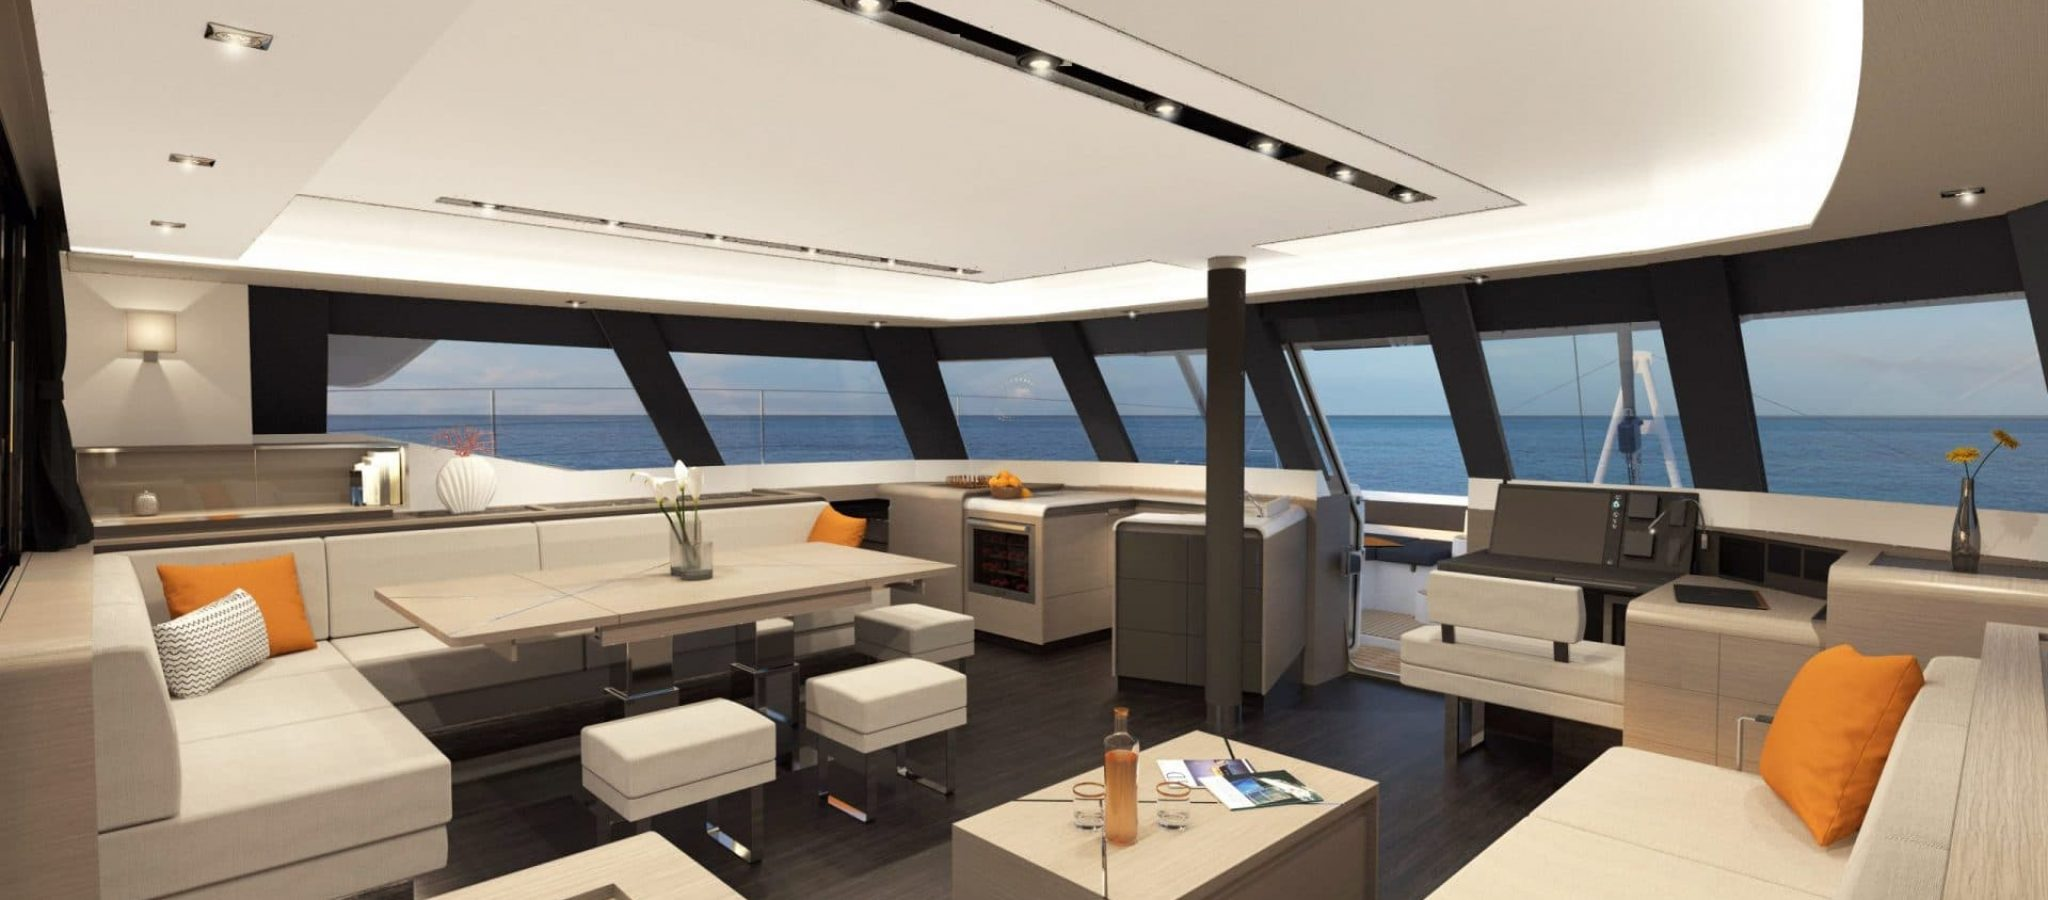 Samana-59-Fountaine-Pajot-Sailing-Catamarans_maestro-cabin_Interior-006--5-